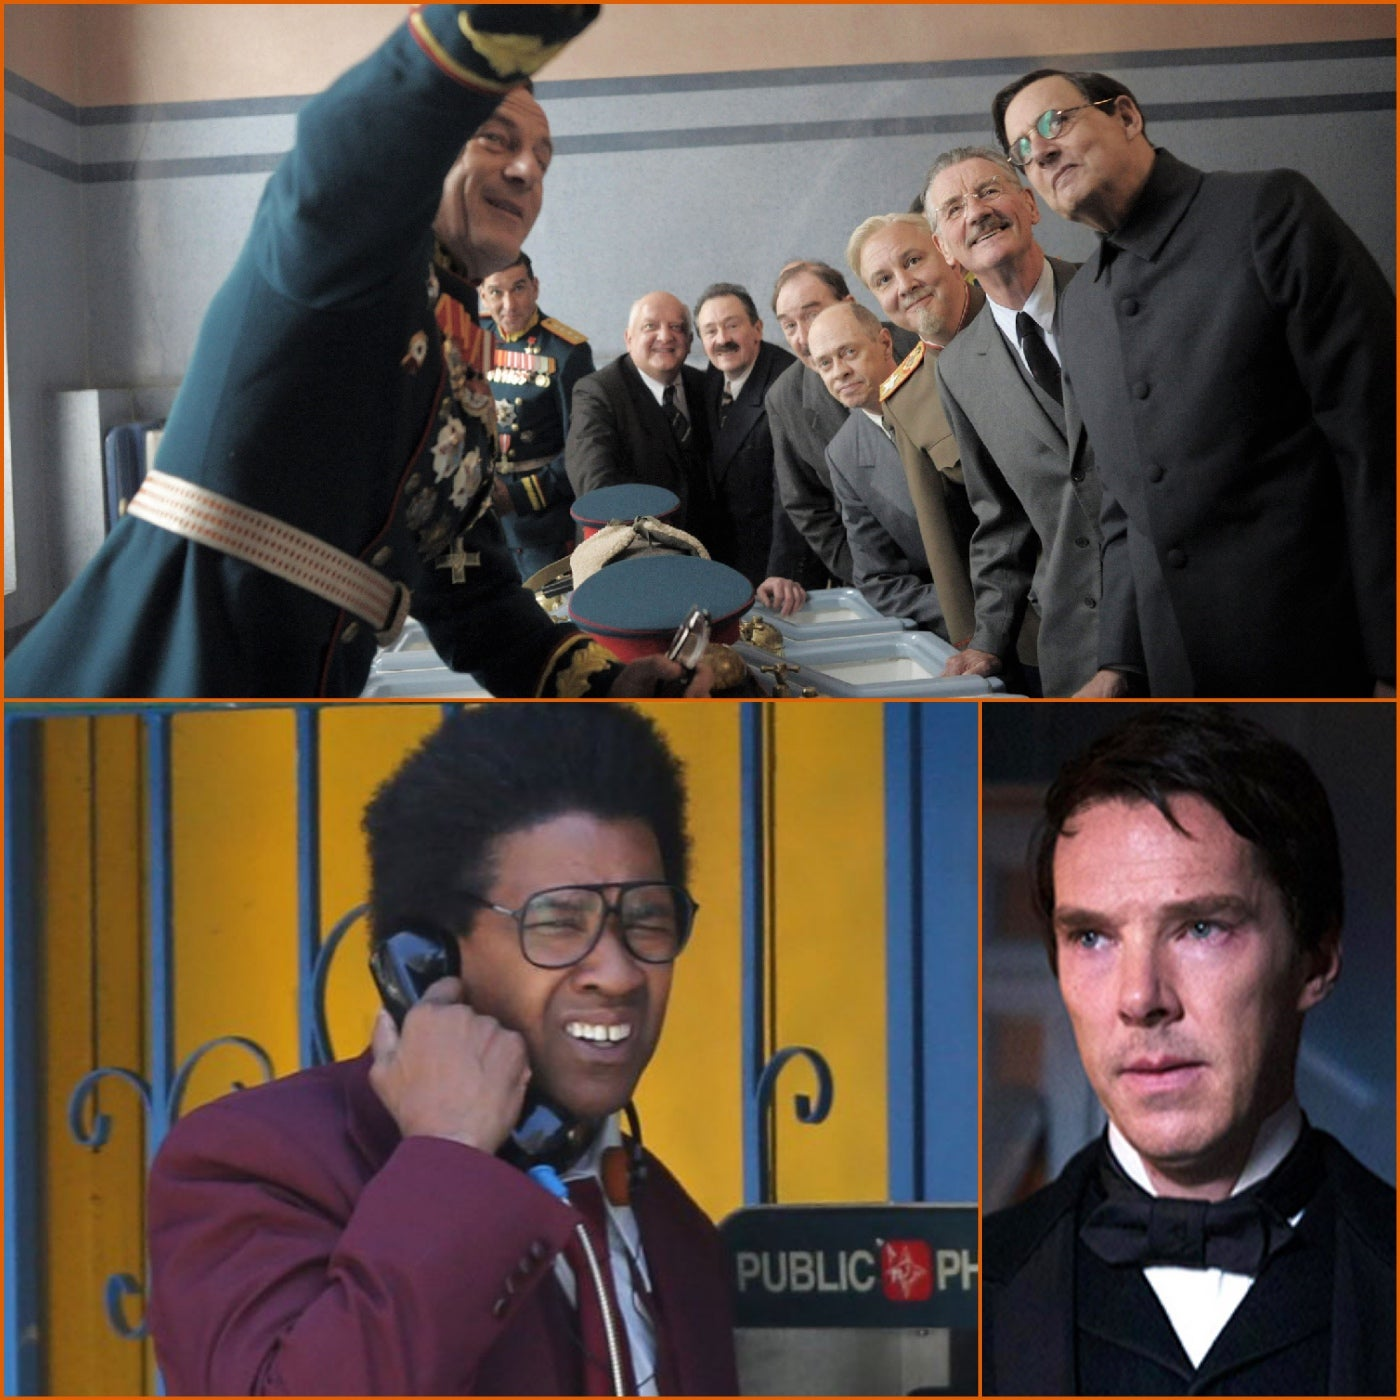 Scenes from some TIFF films: The Current War, Roman J Israel, Esq and The Death of Stalin